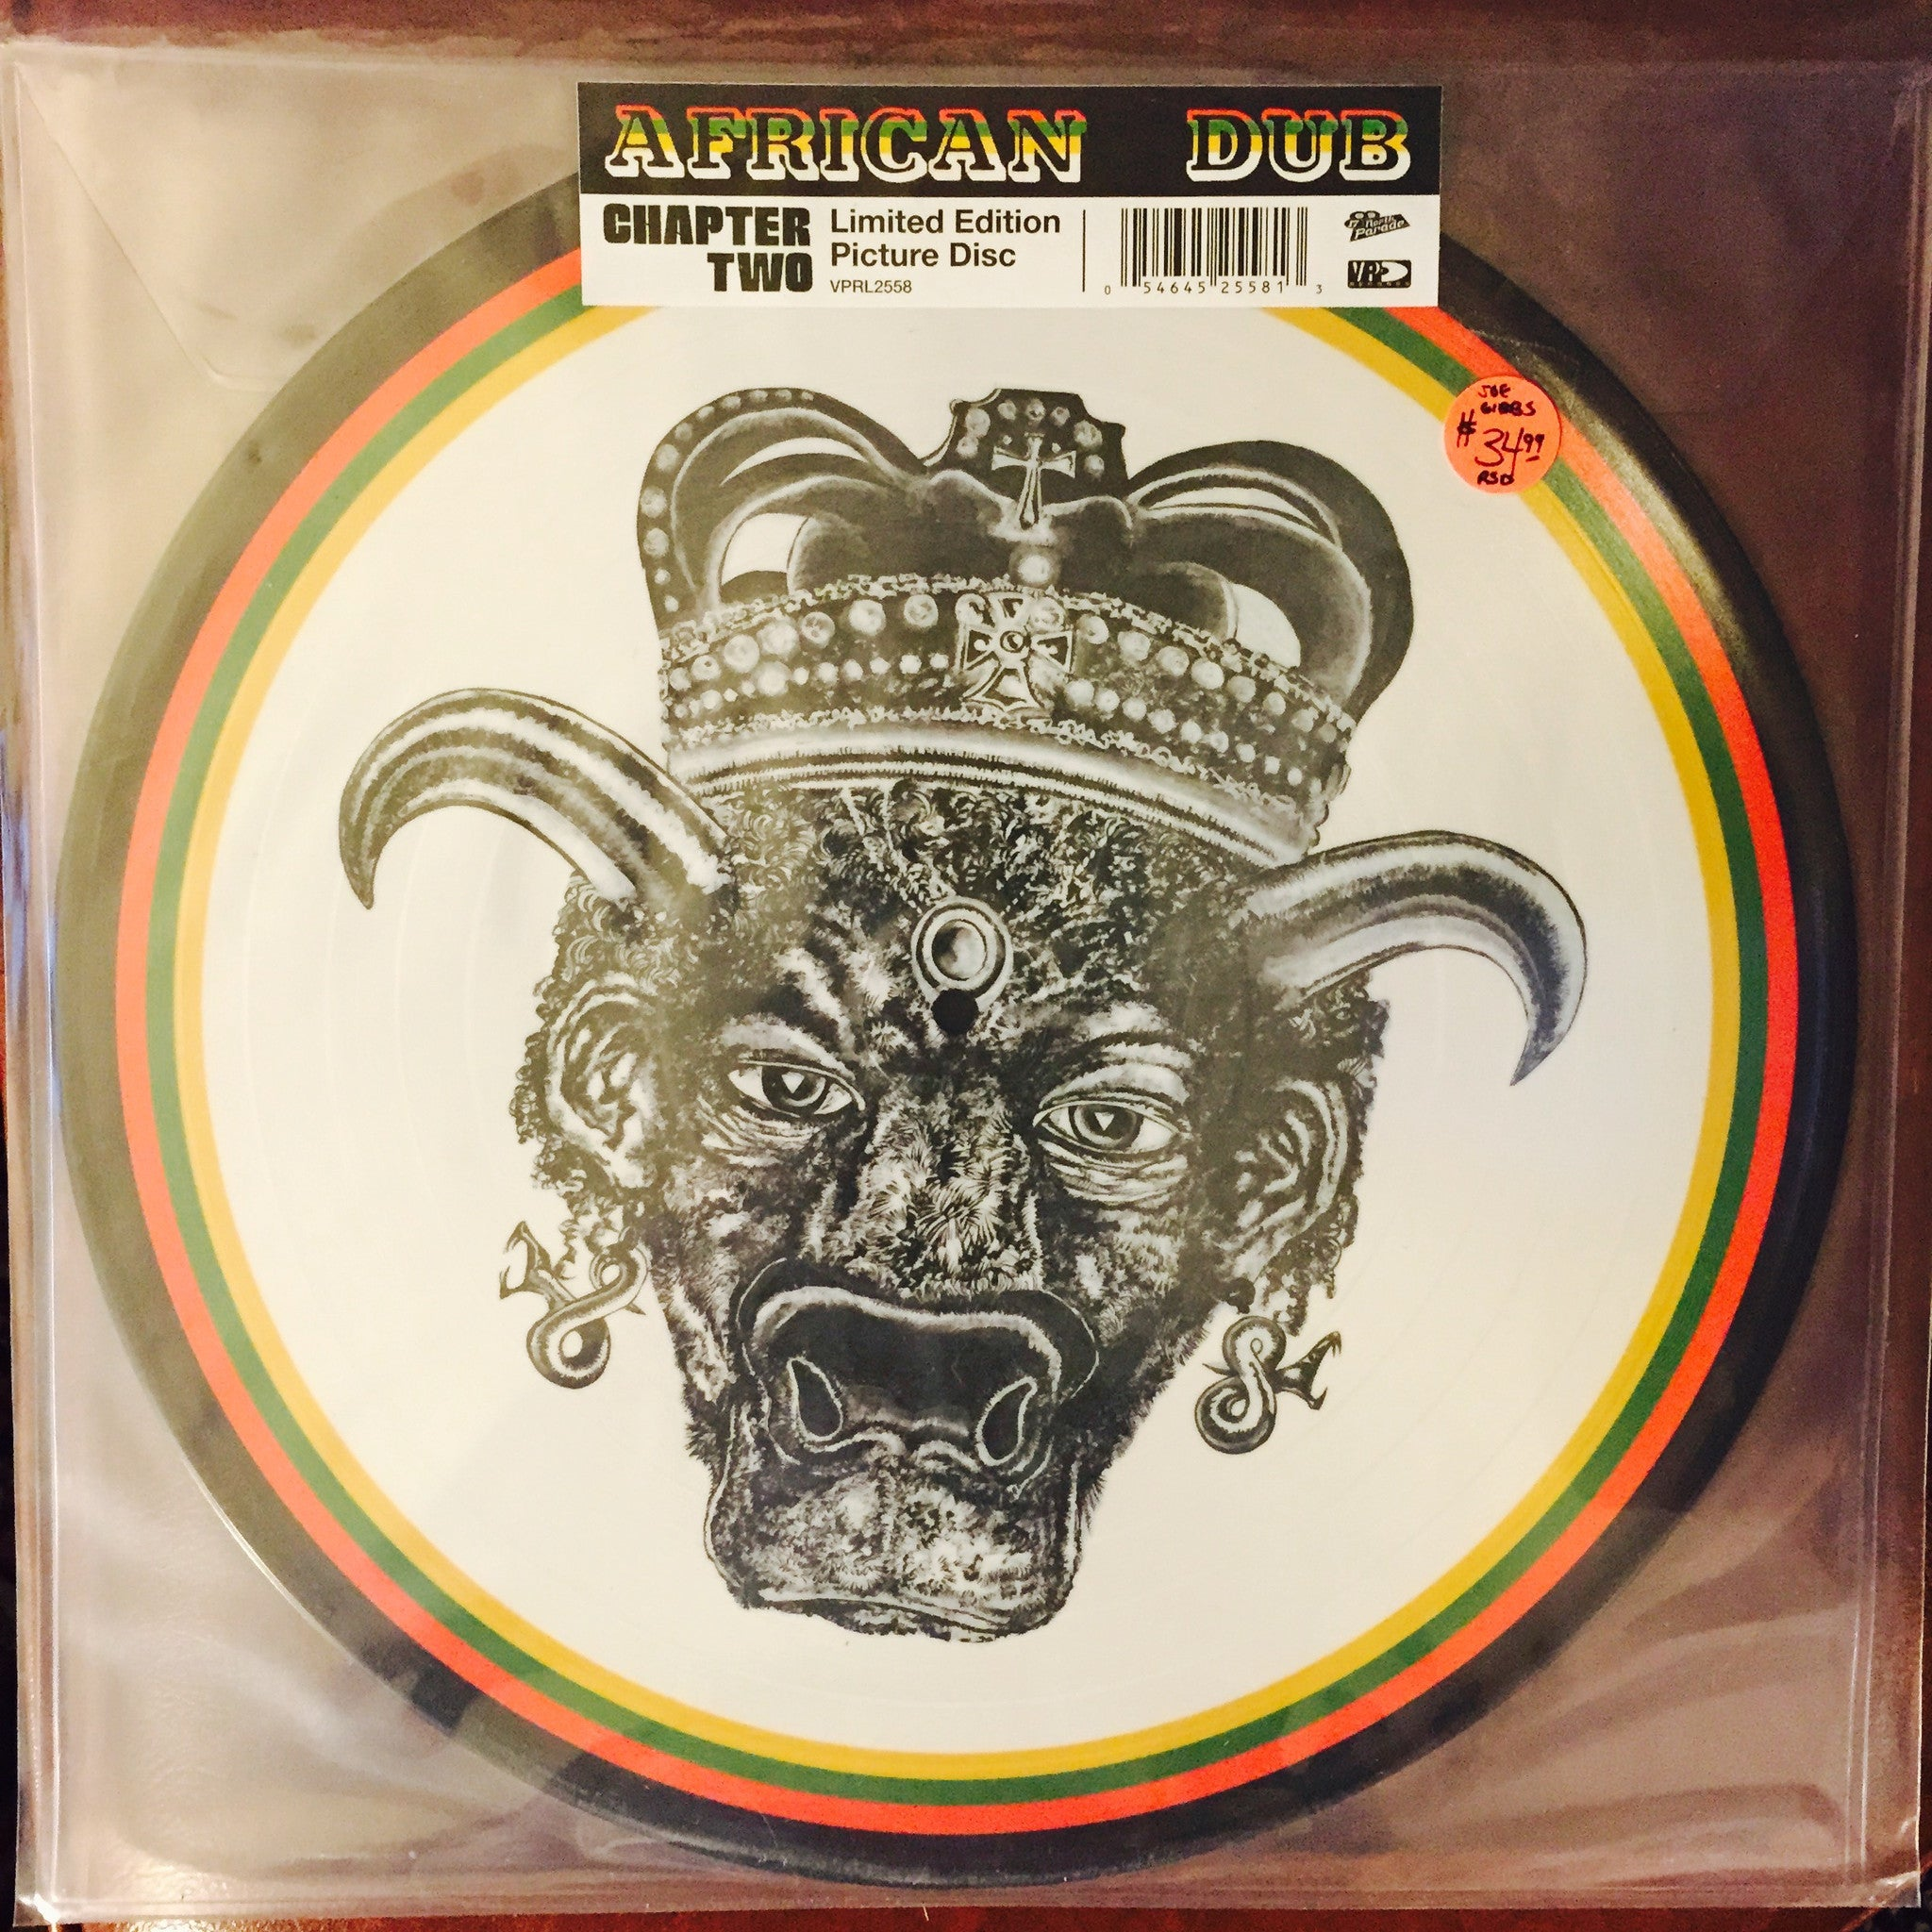 Joe Gibbs - African Dub Chapter Two Limited Edition Picture Disc LP (RSD 2015)